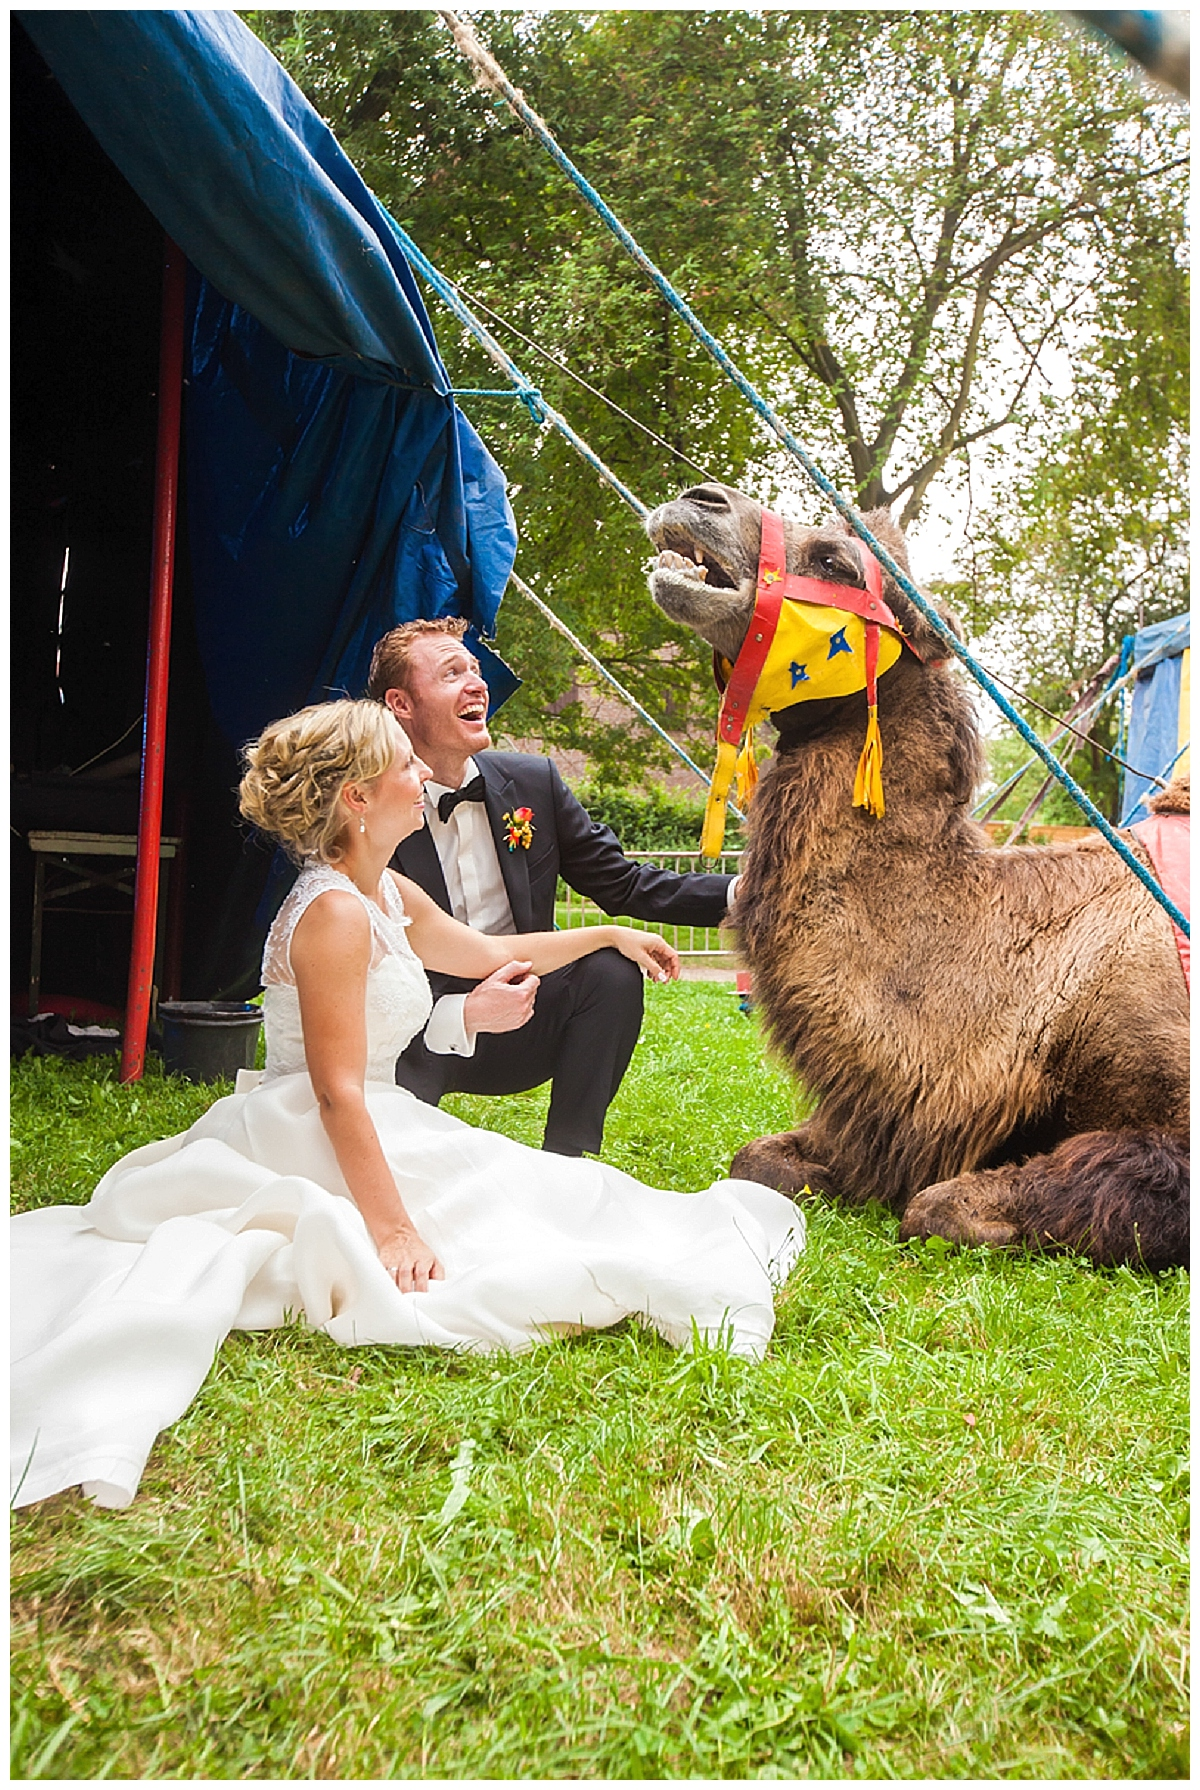 AWS Denise und Thomas Circus bunt 158_Verrueckt nach Hochzeit_ After Wedding Shooting_Zirkus